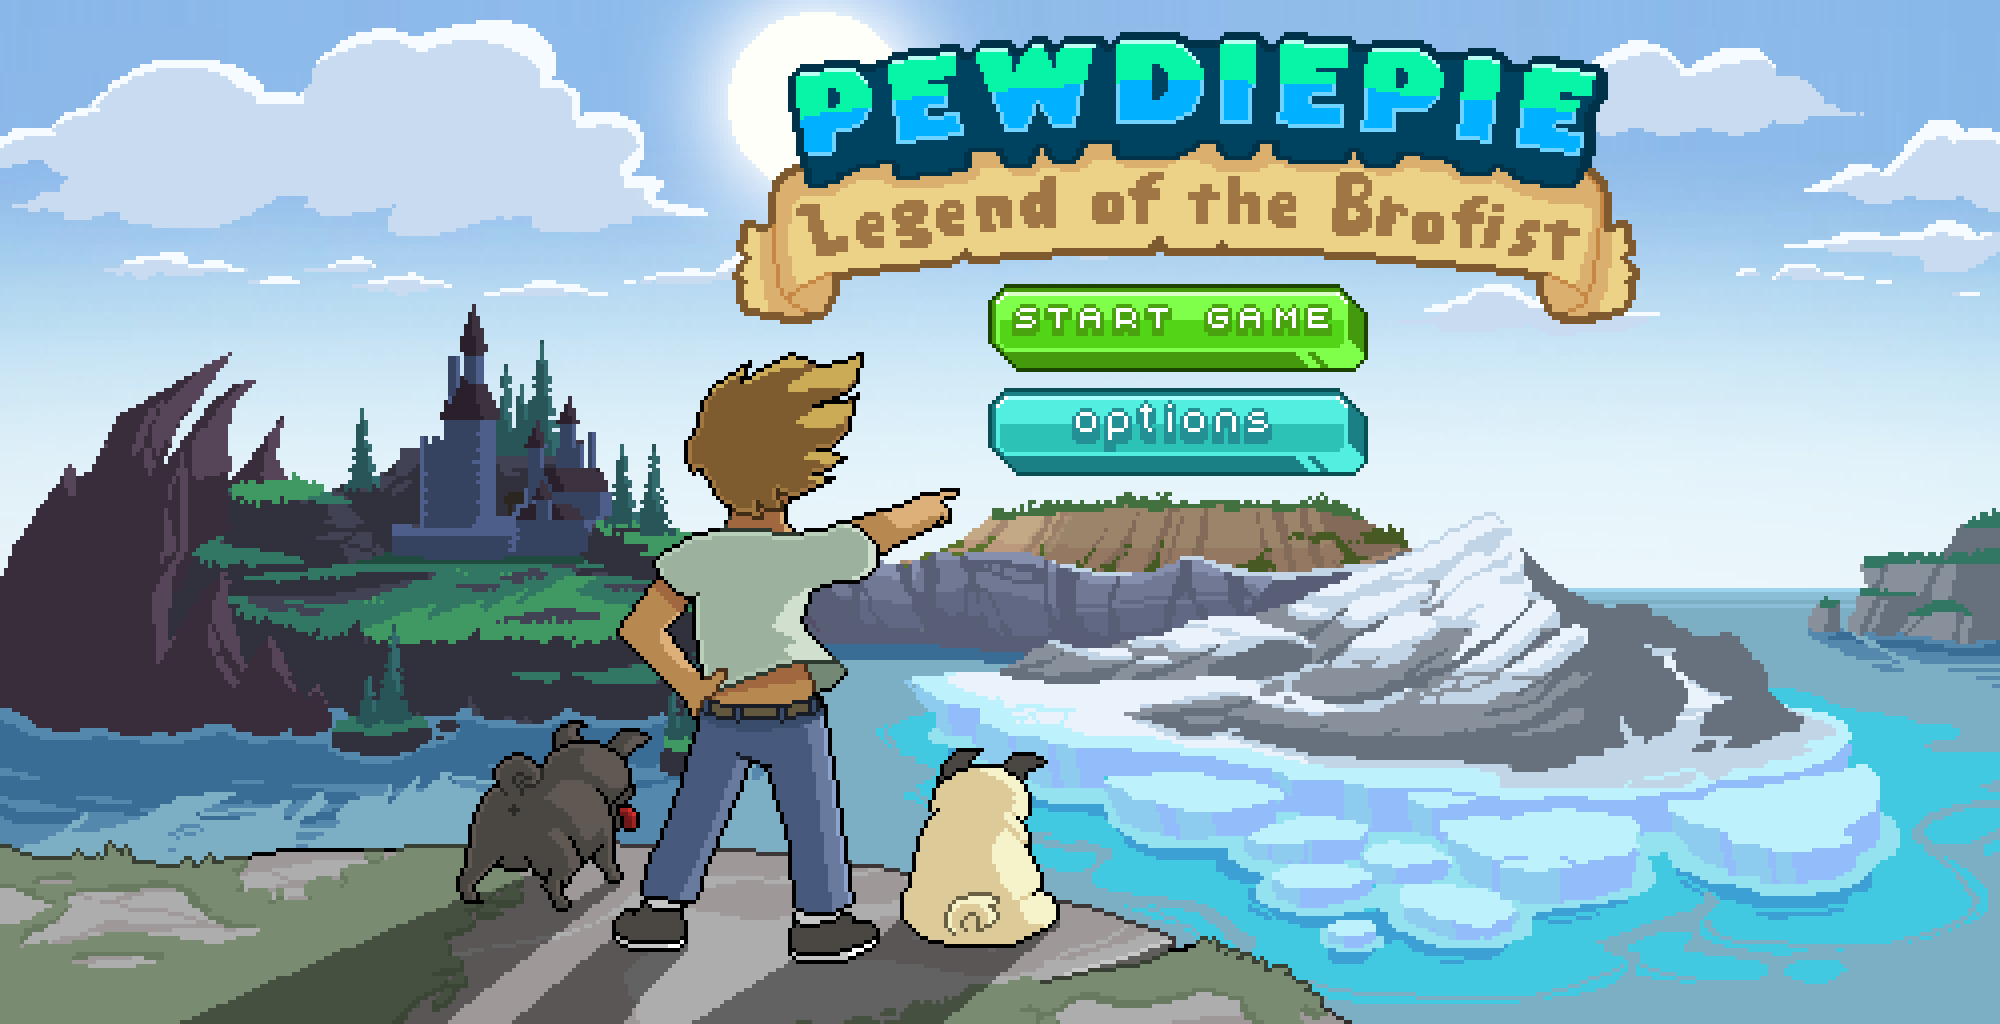 Brofist, Pewdiepie : Legend of the Brofist d'ici jeudi !